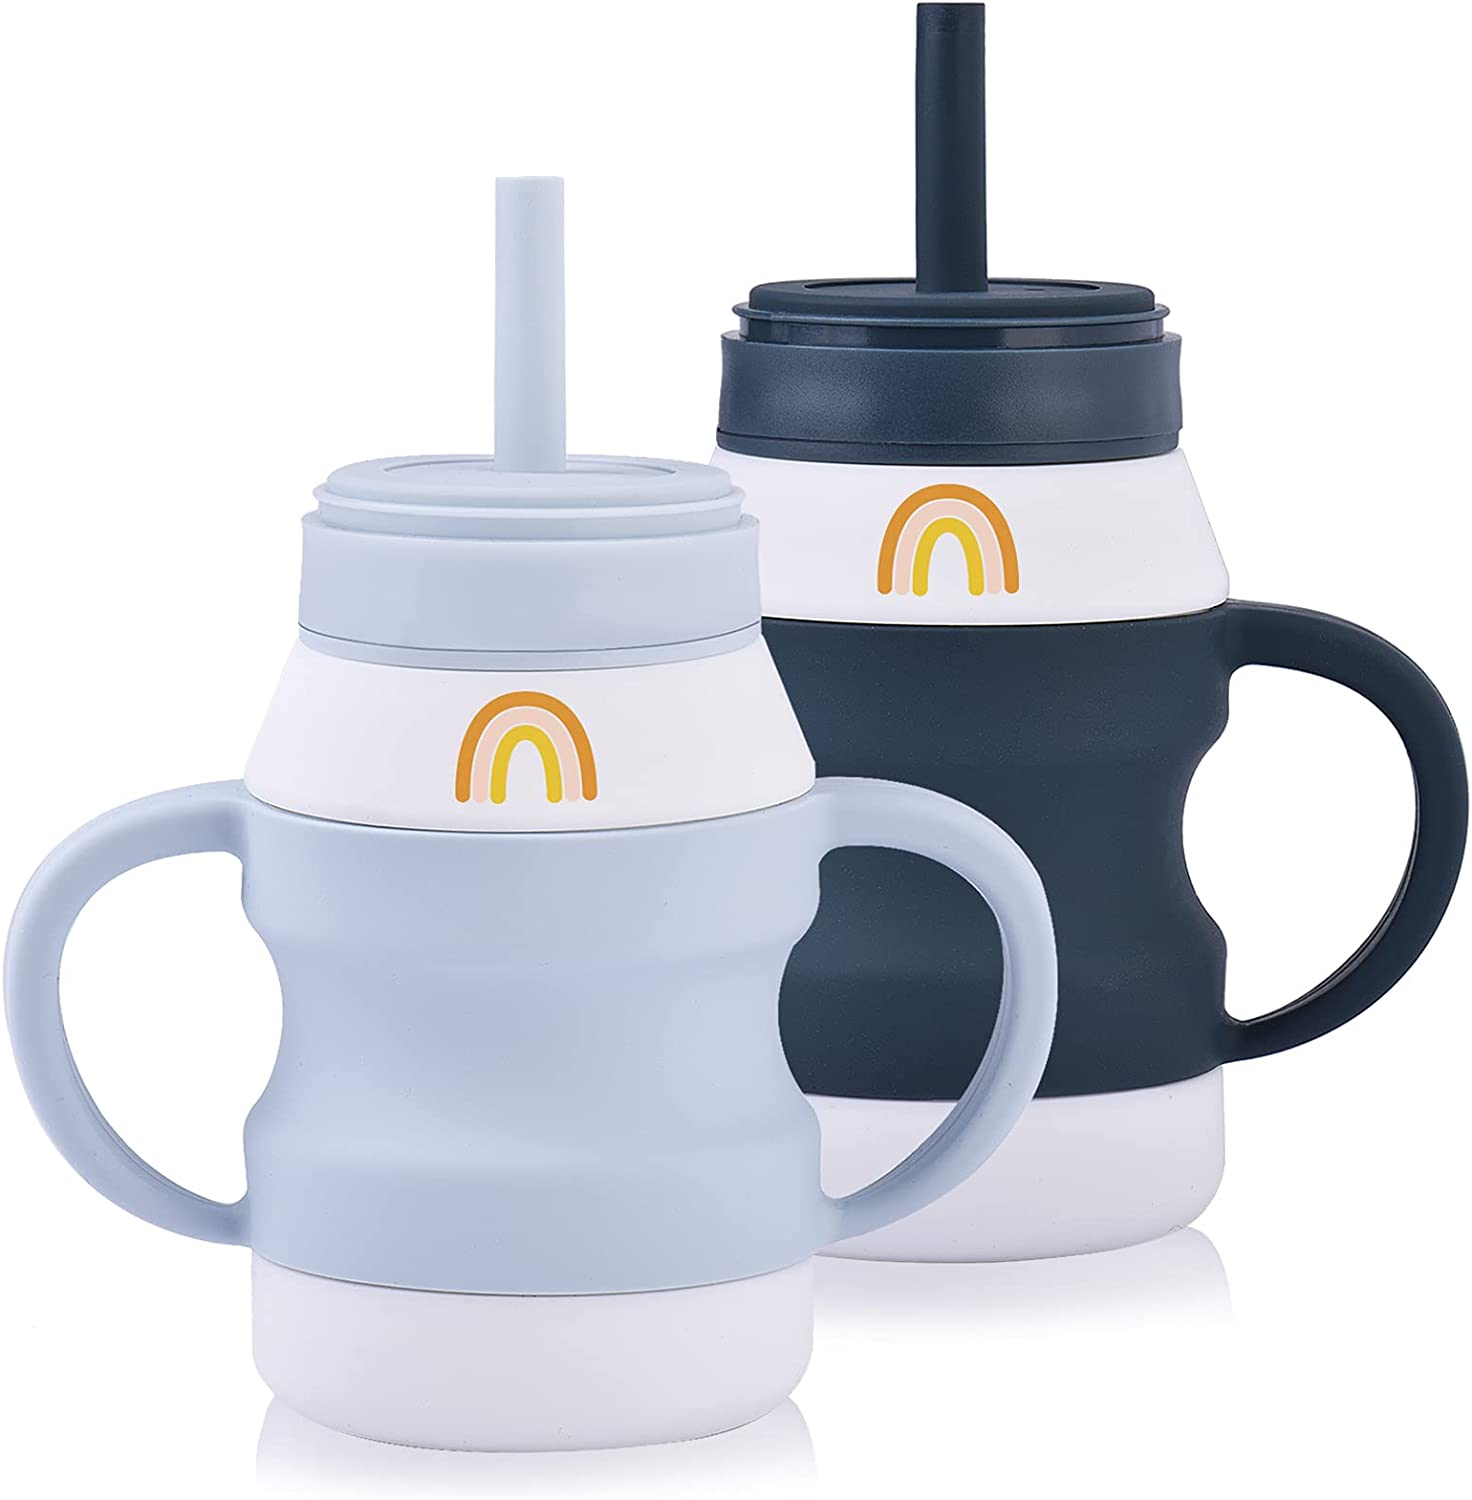 Toddler Cups Sprill Proof Sippy Silicone Tiny Straw Max 52% OFF Wholesale Trainin Cup